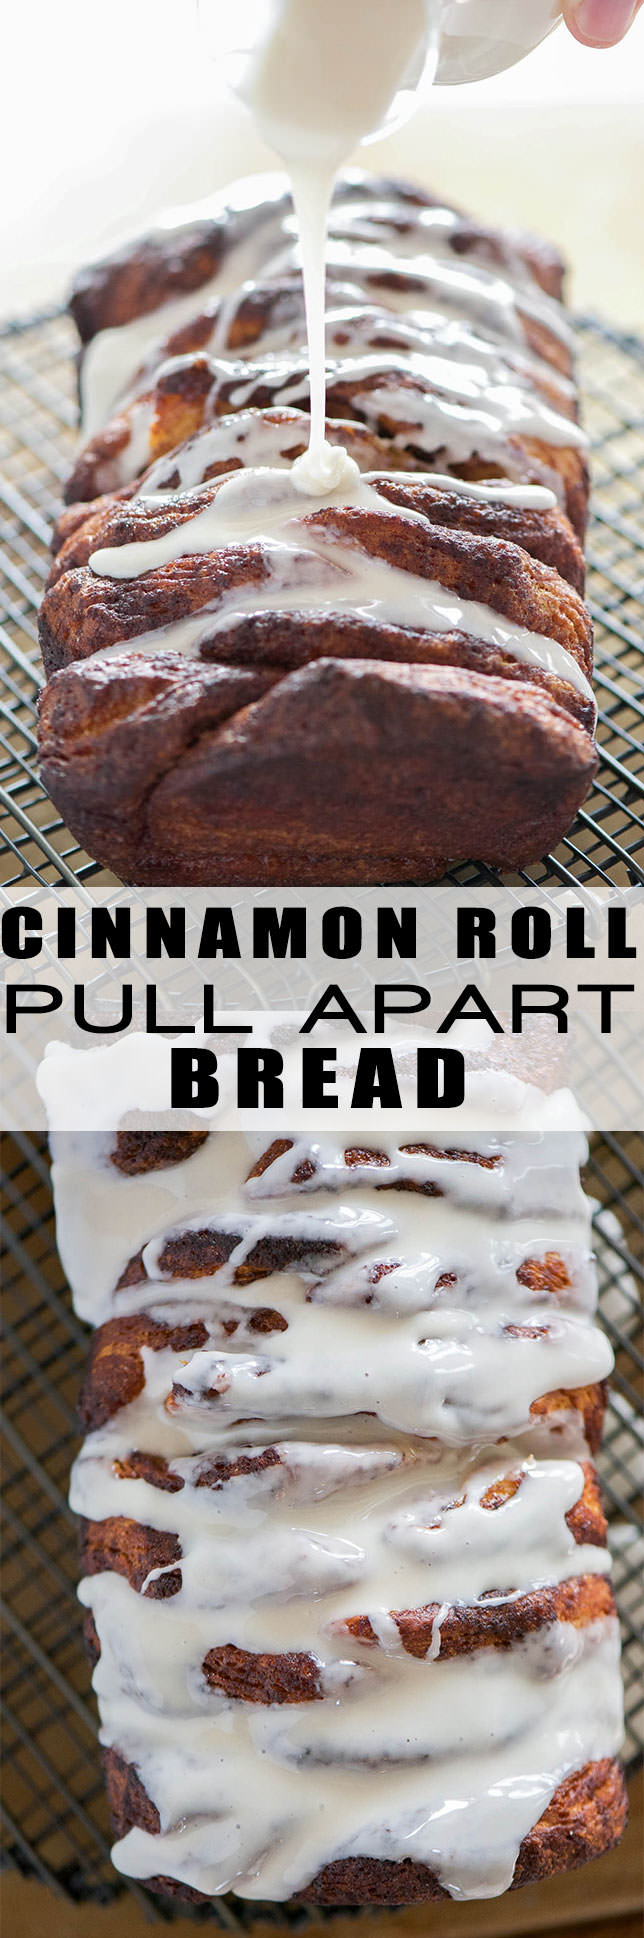 Lightened Up Cinnamon Roll Pull Apart Bread as the ooey gooey flavor of your favorite sweet rolls, but in an easy and fun loaf form! Flakey biscuits layered with a lightened up cinnamon sugar mixture and drizzled in a delicious glaze! The perfect treat for any morning!